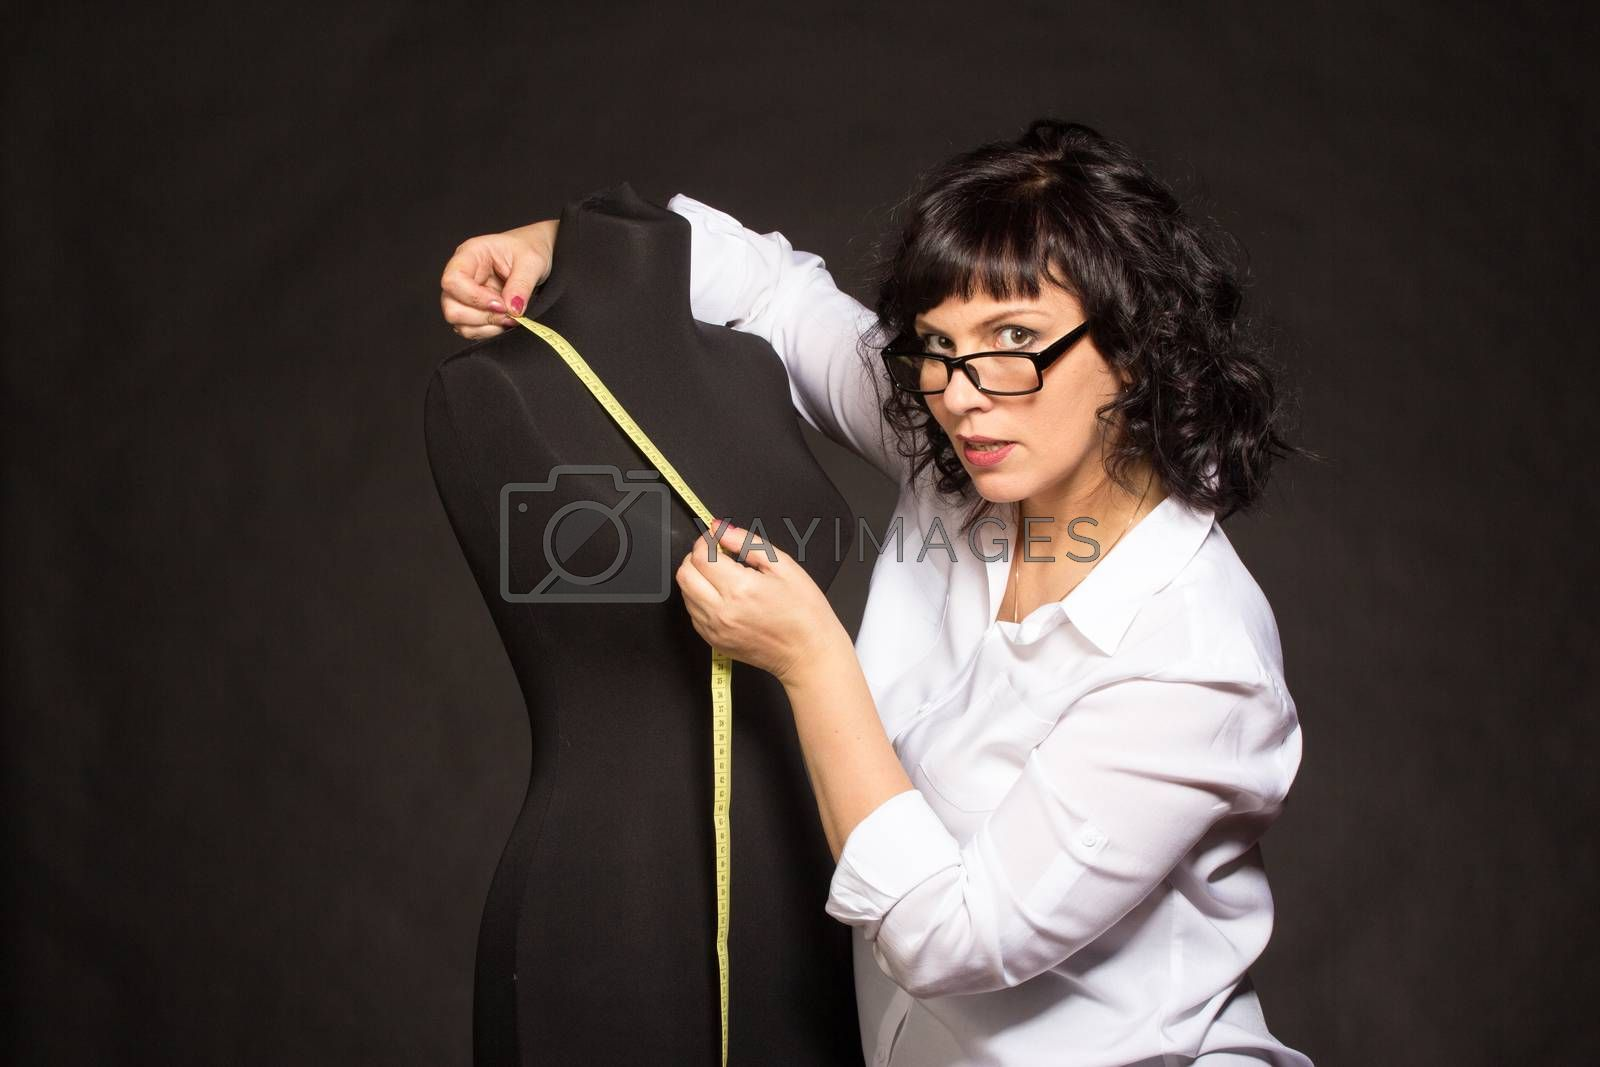 Royalty free image of Adult tailor with mannequin by gsdonlin